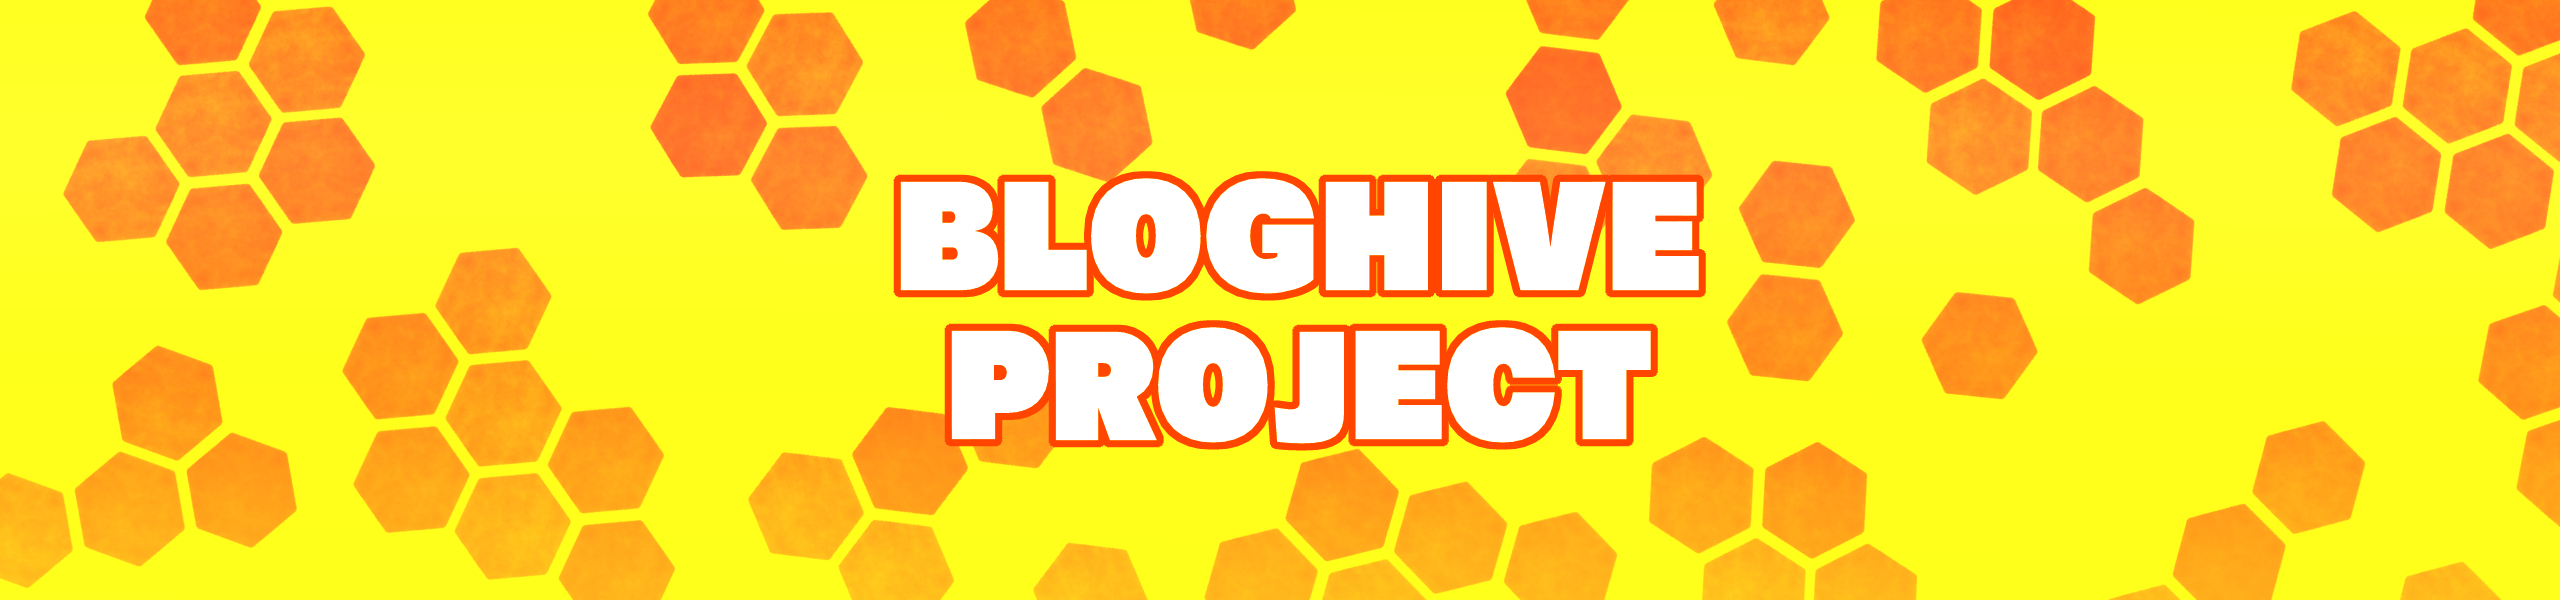 BLOGHIVE PROJECT